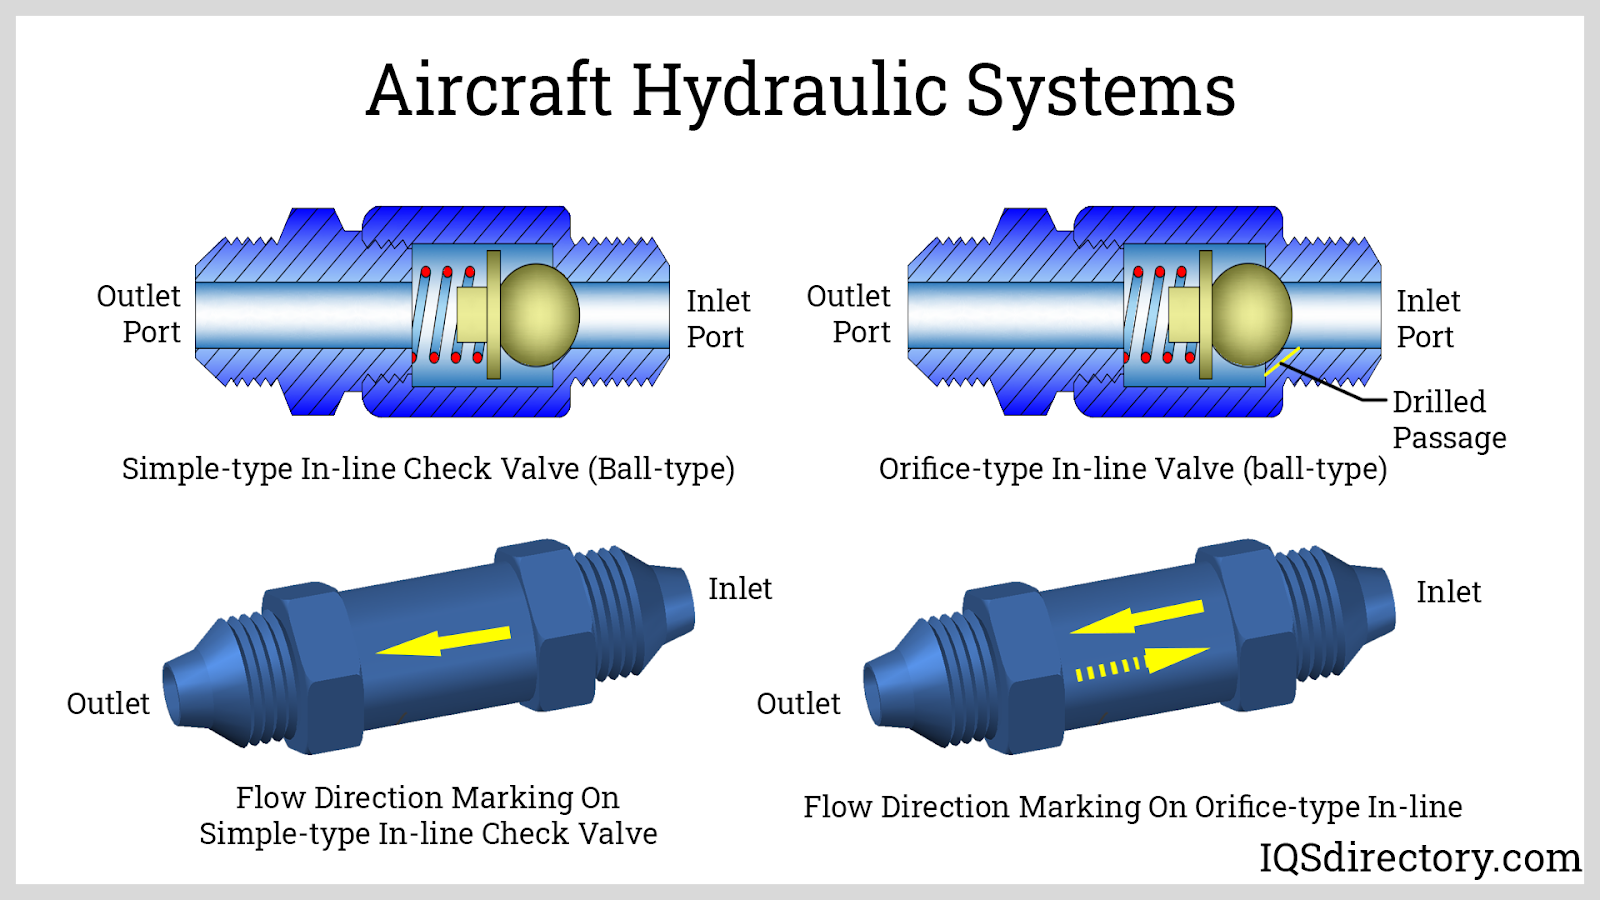 Aircraft Hydraulic Systems Check Valves